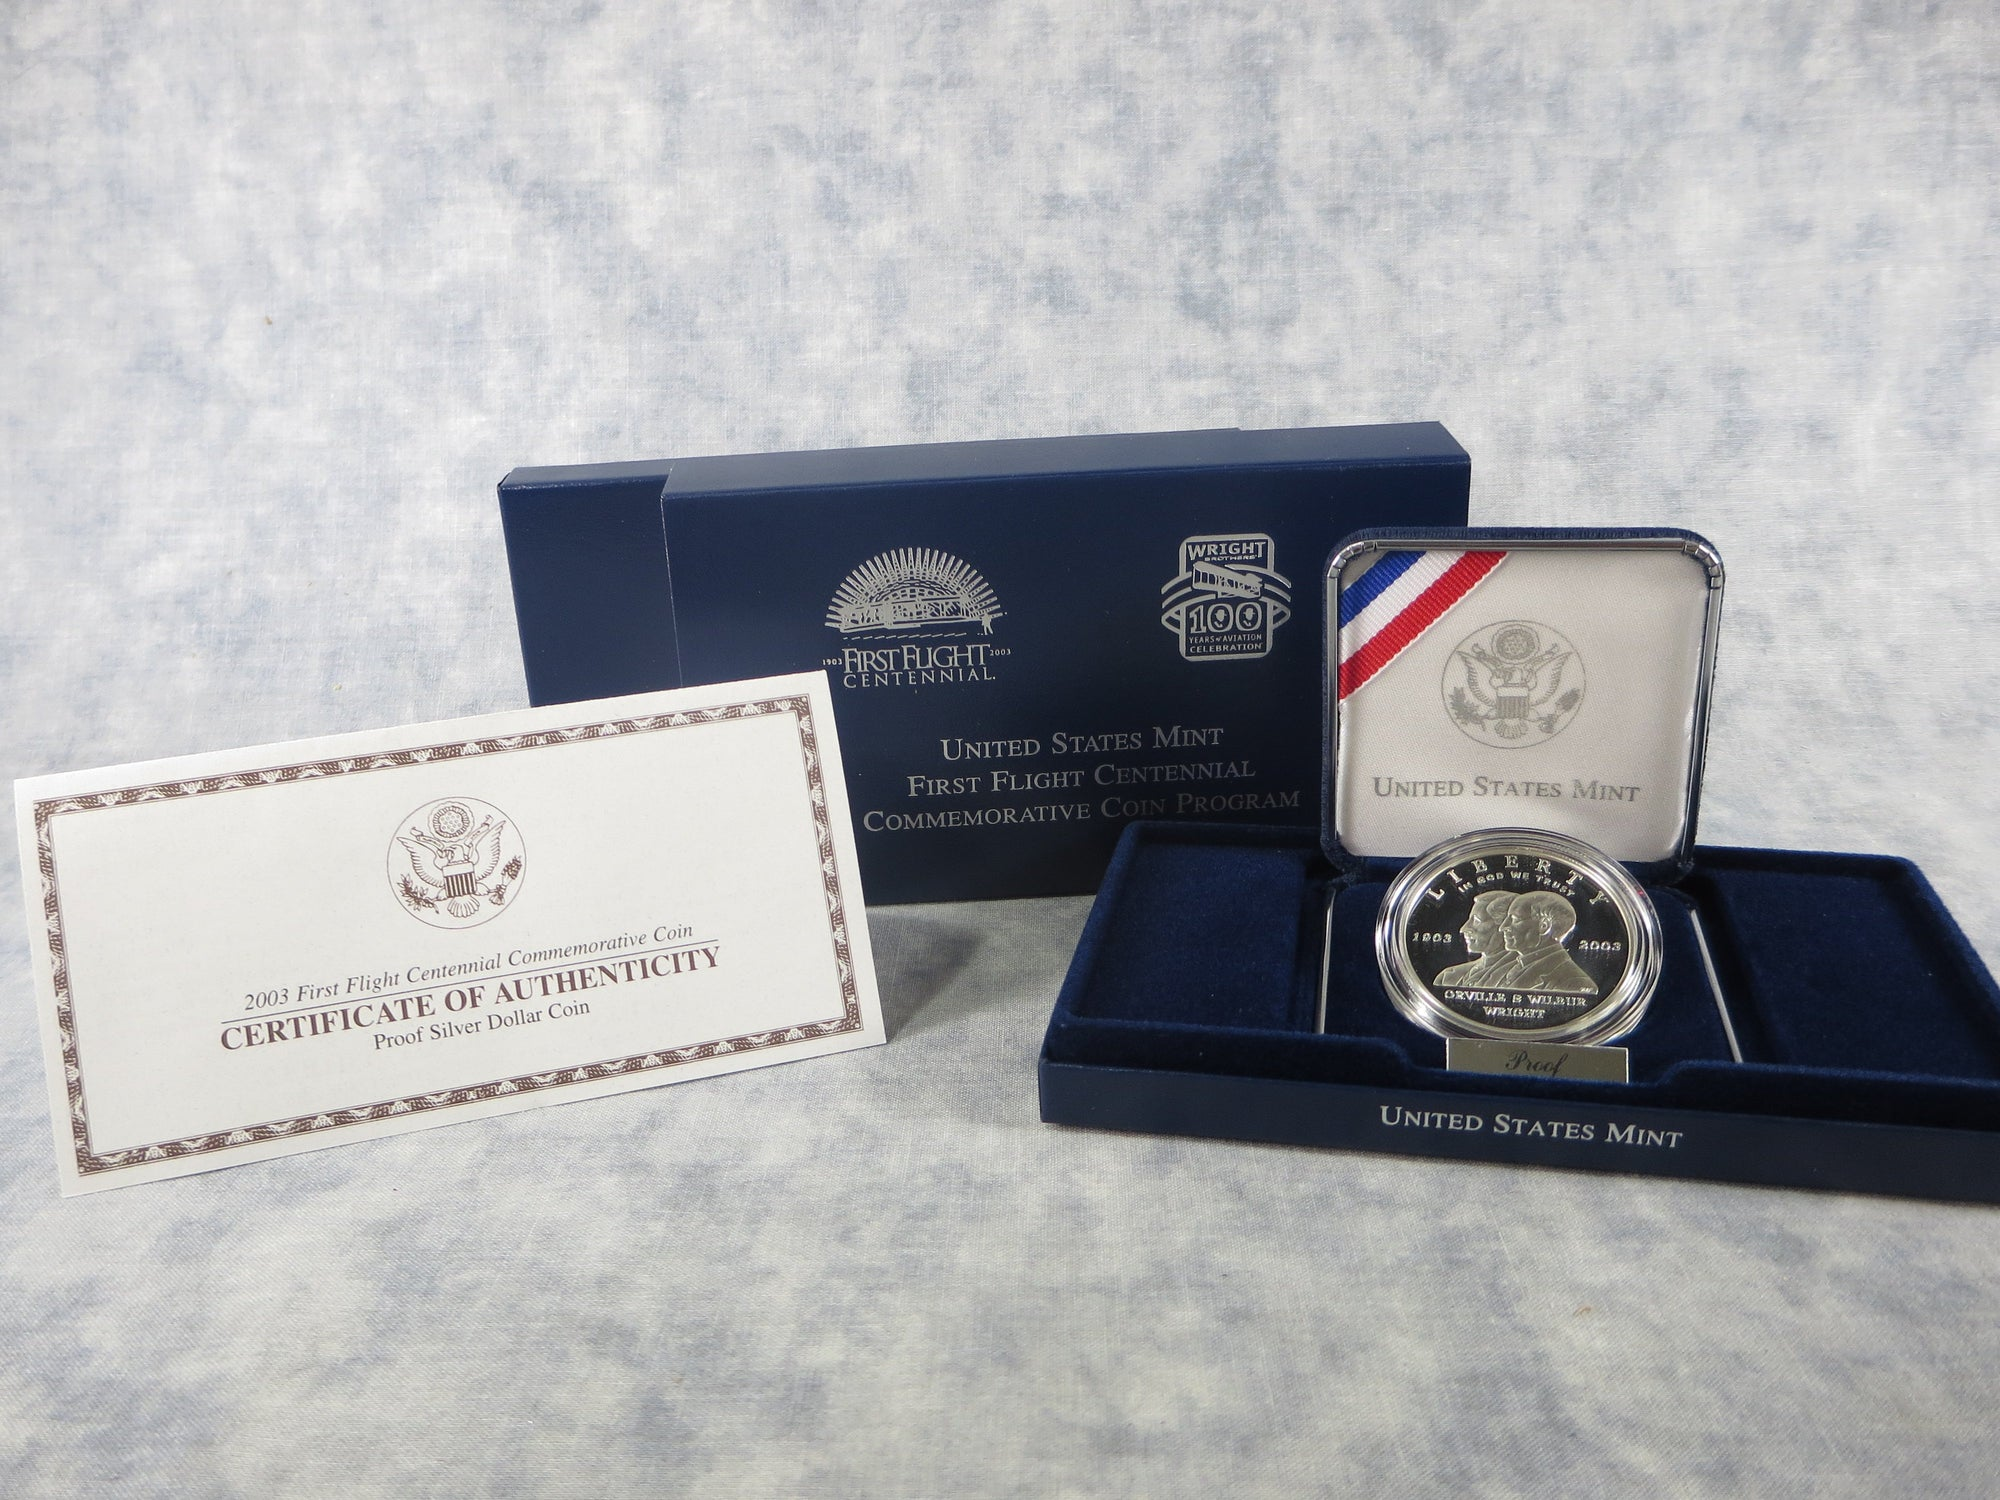 2003-P First Flight Commemorative Silver Dollar Proof